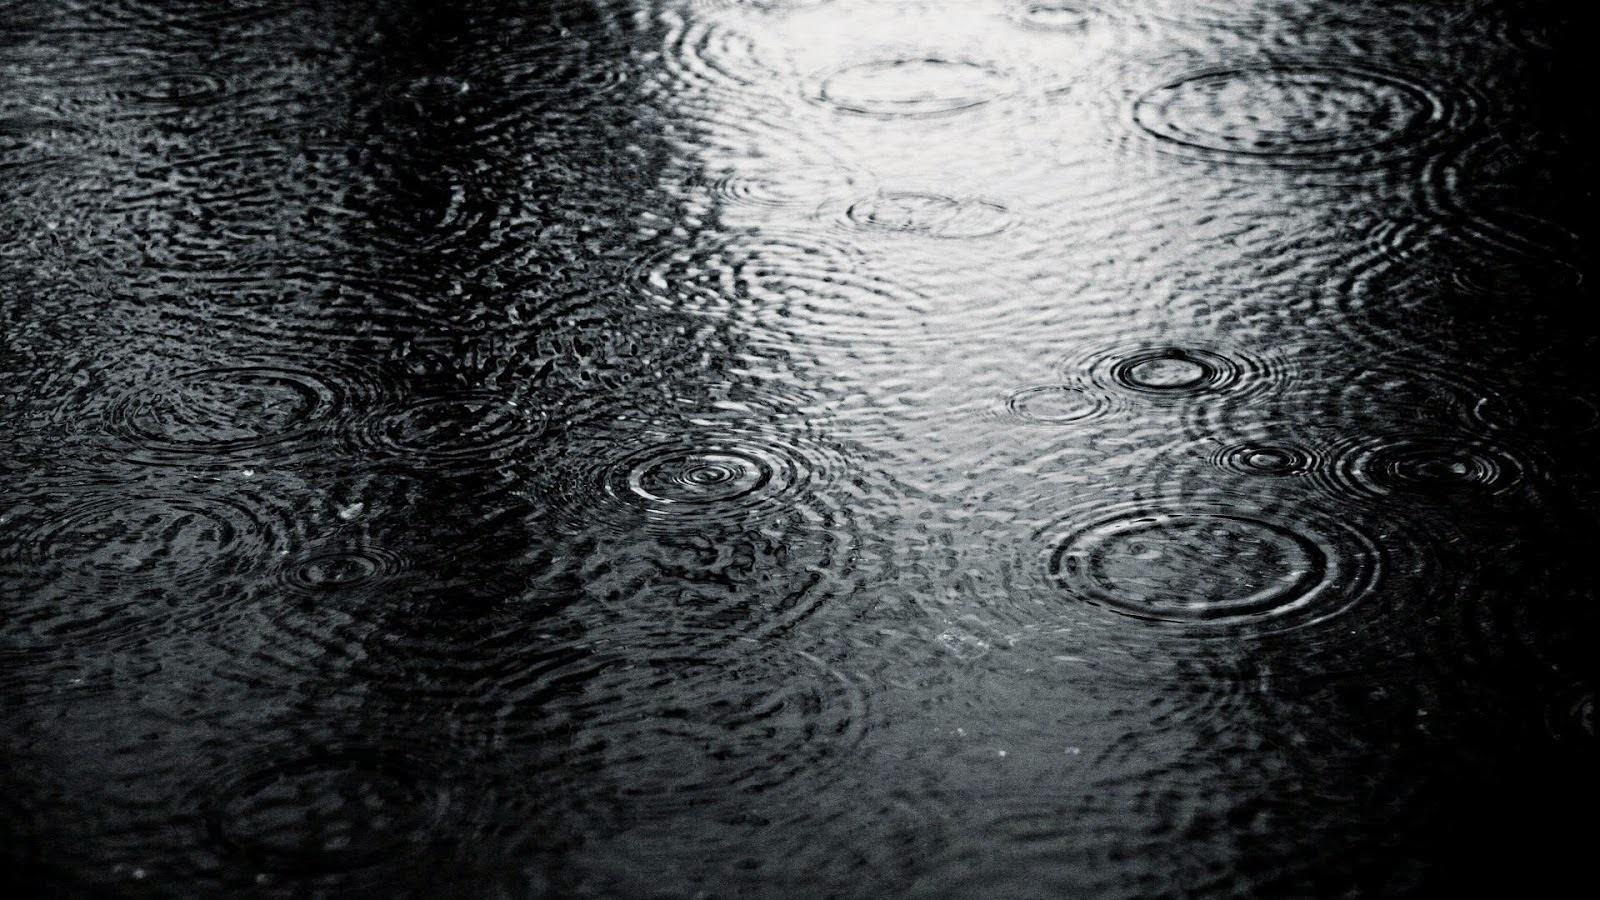 Wow Rainy Day Wallpapers